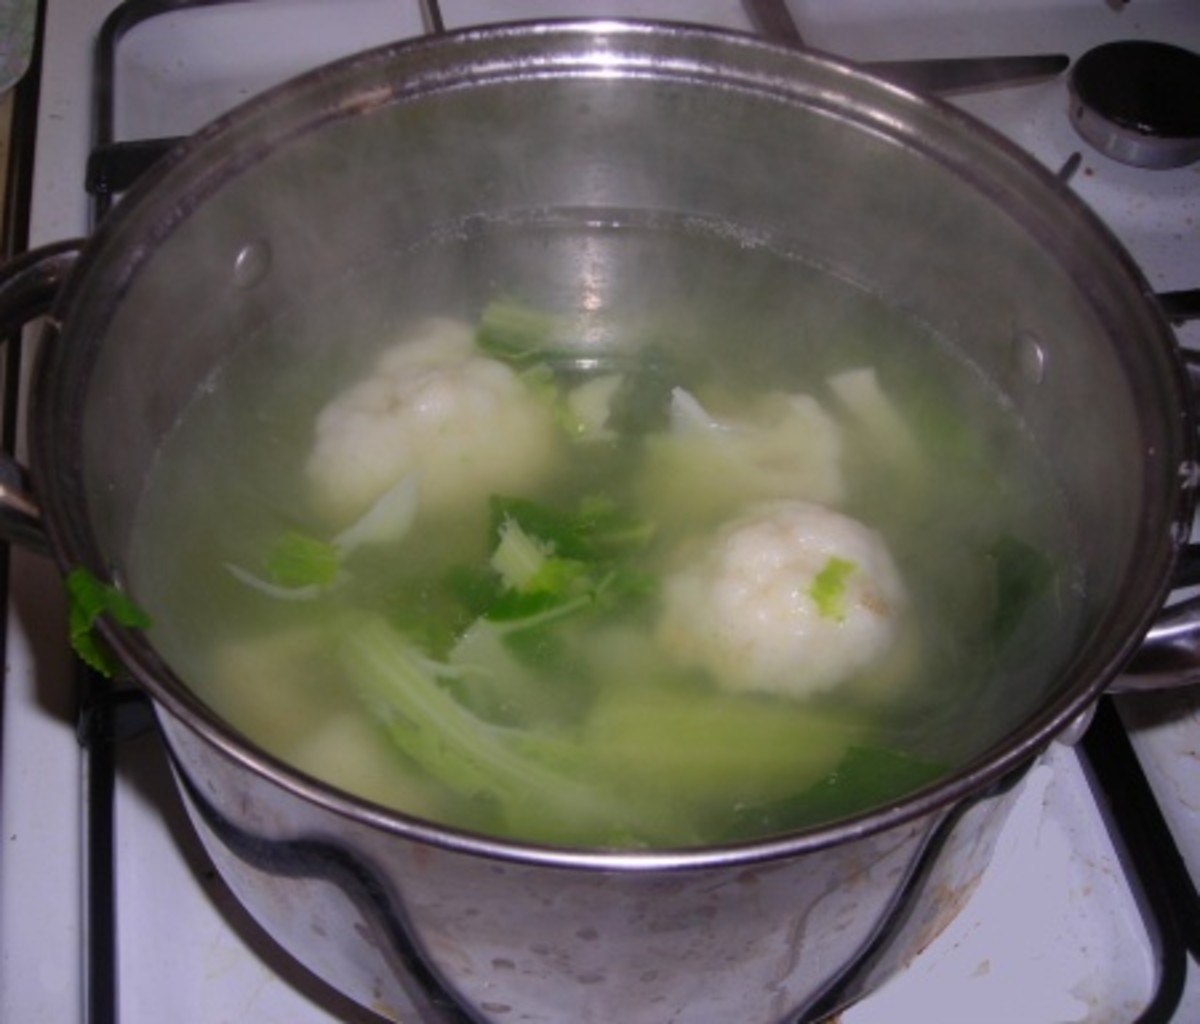 Cauliflower boiling in a saucepan